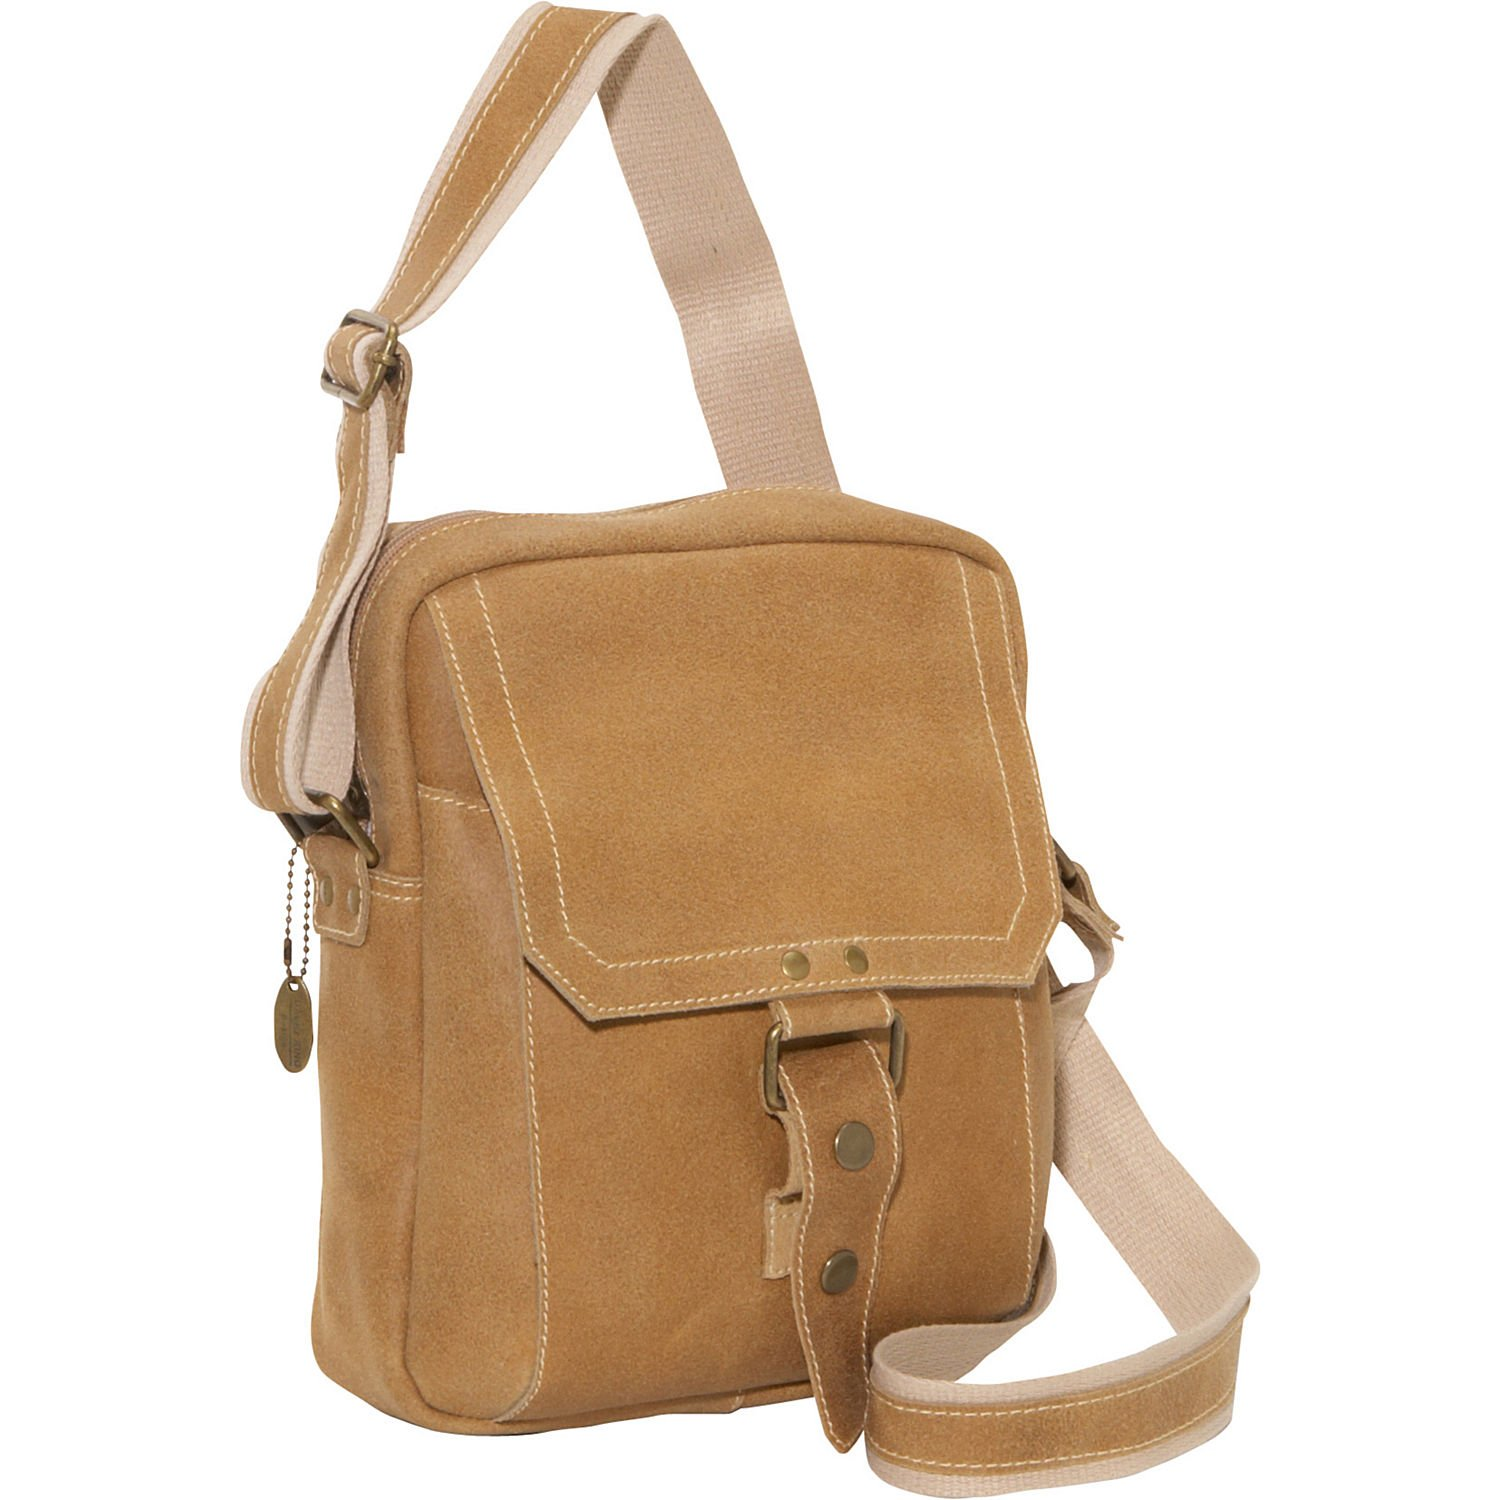 David King Distressed Leather Man Messenger Bag in Tan